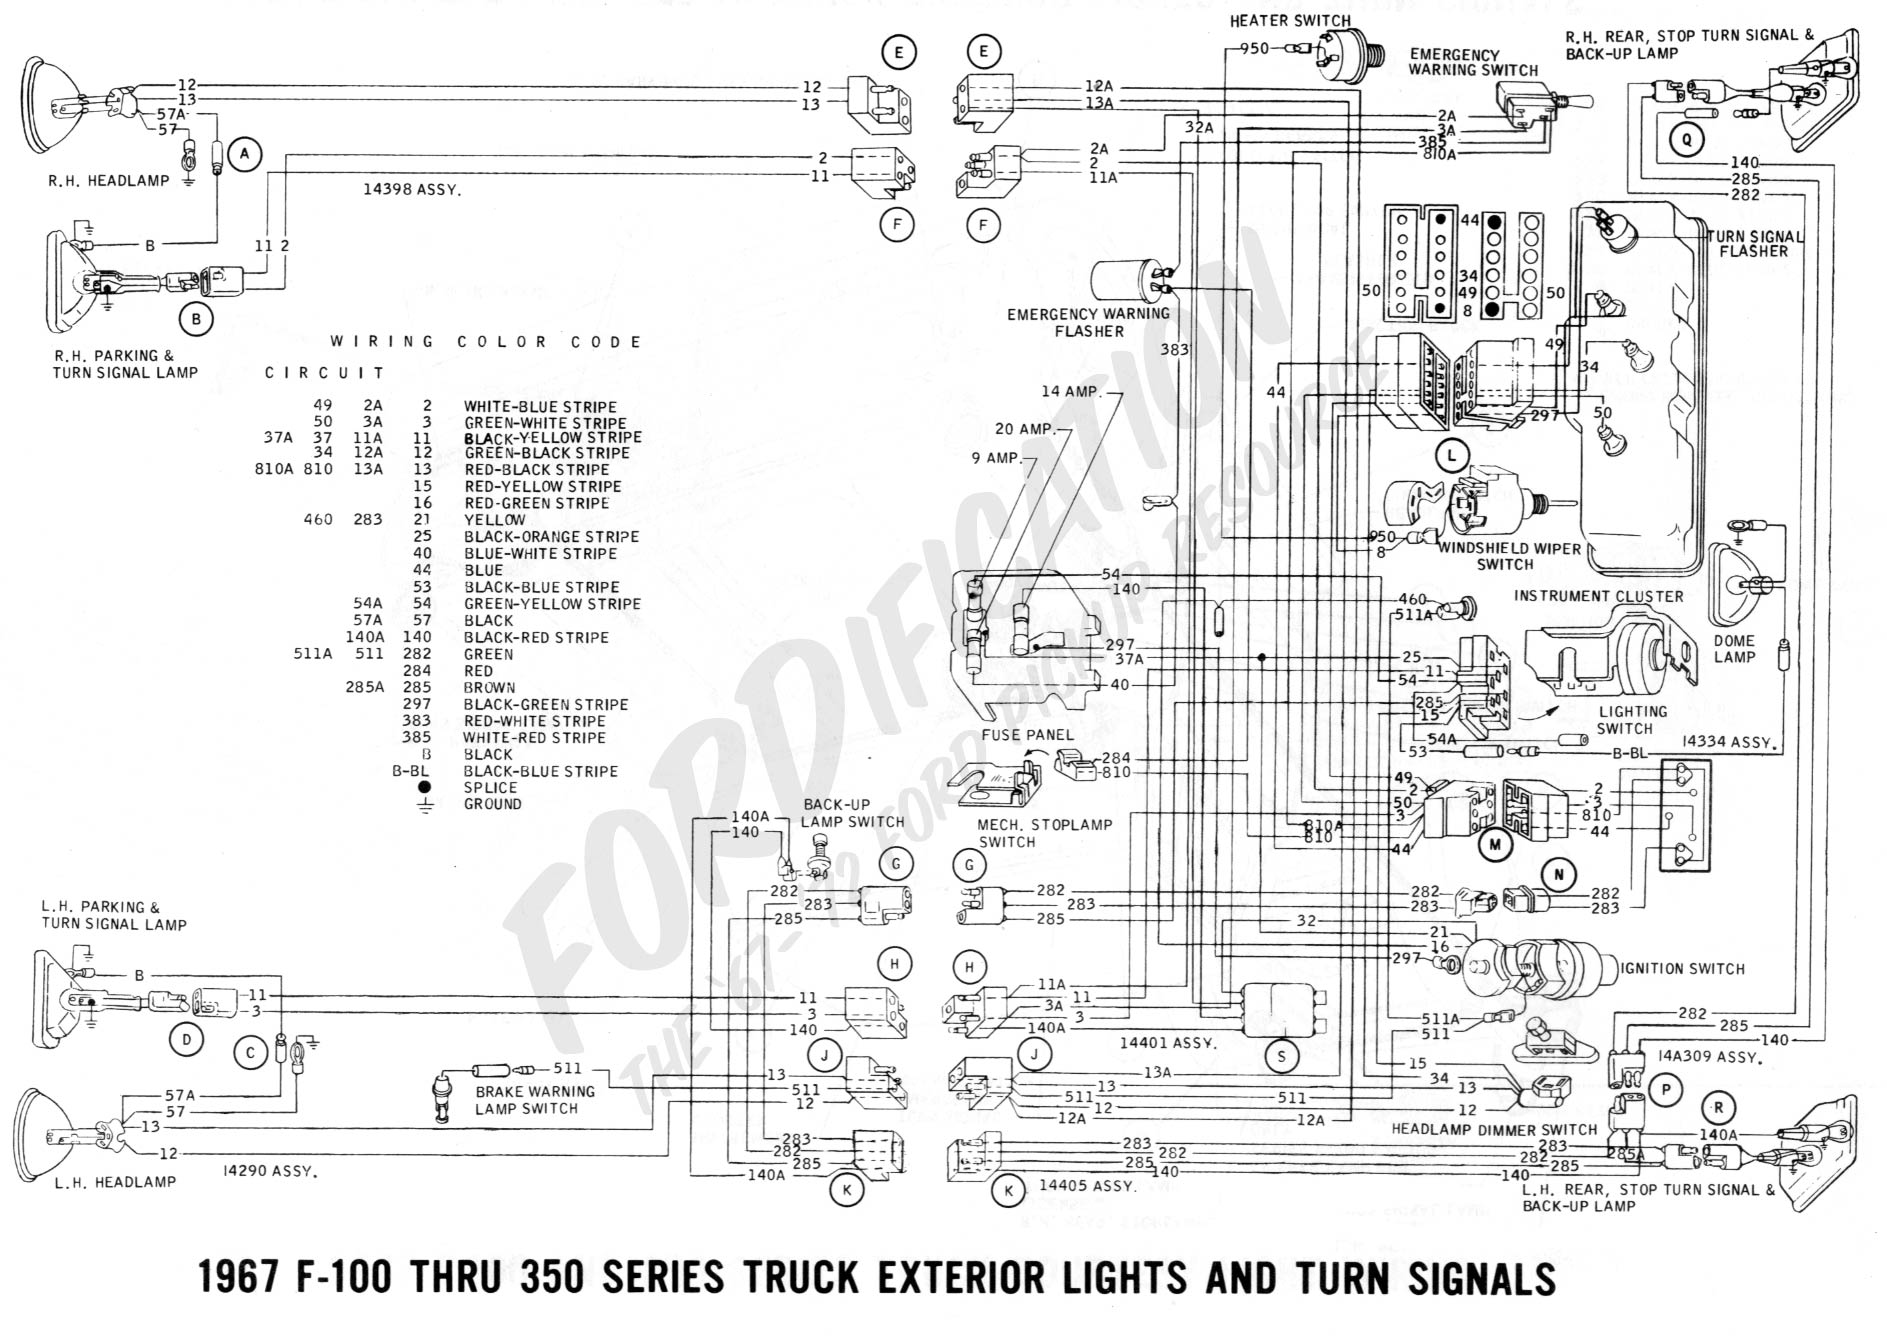 1977 Ford Thunderbird V8 Engine Diagrams Starting Know About 2007 Kia Rondo Wiring Diagram Truck Technical Drawings And Schematics Section H